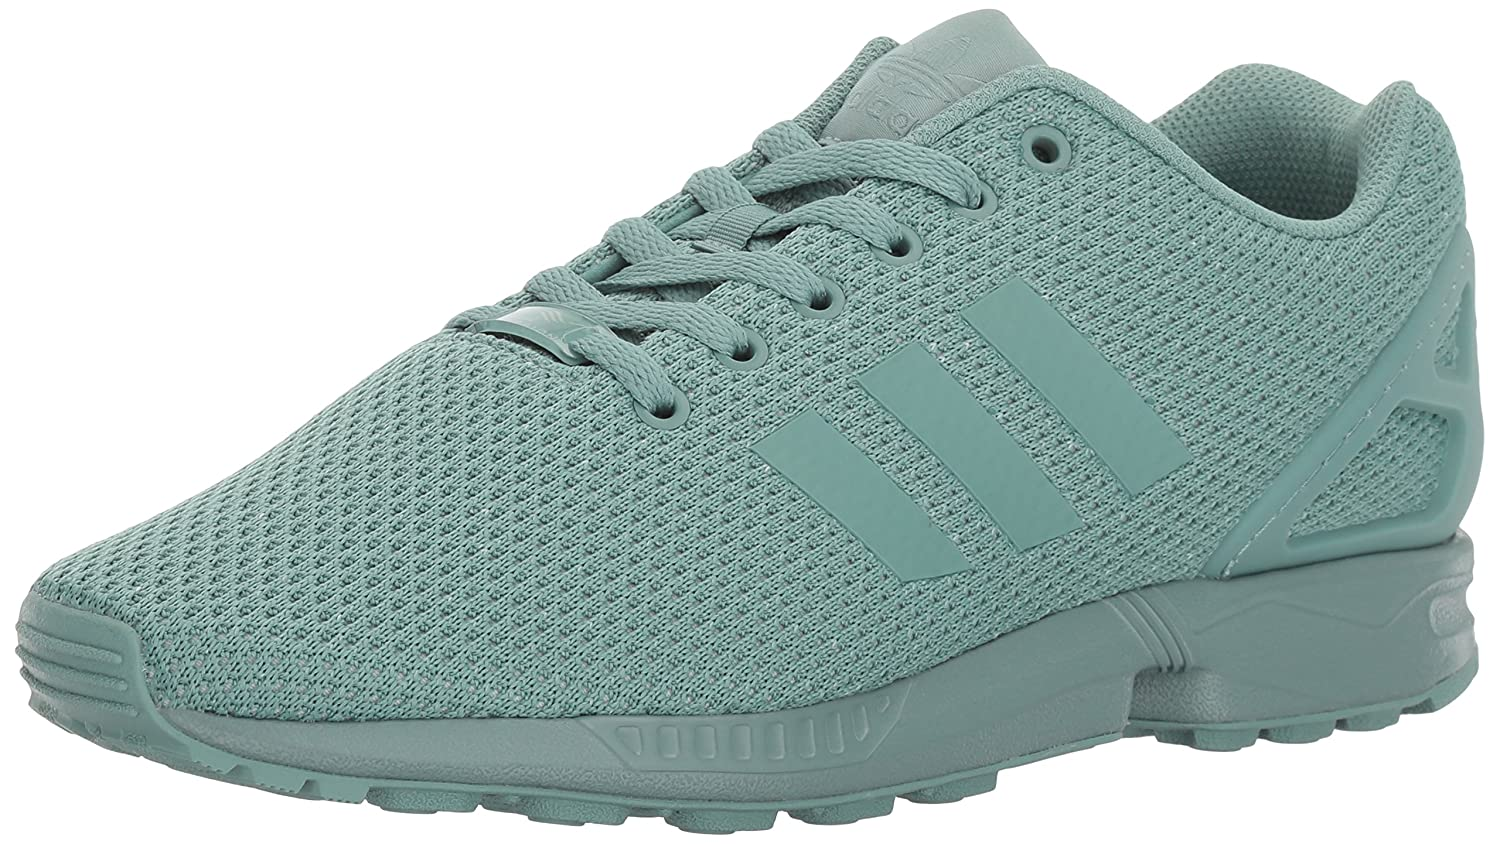 adidas Originals Men's ZX Flux Fashion Sneaker B01M18O862 7 D(M) US|Vapour Steel Vapour Steel Vapour Steel Fabric